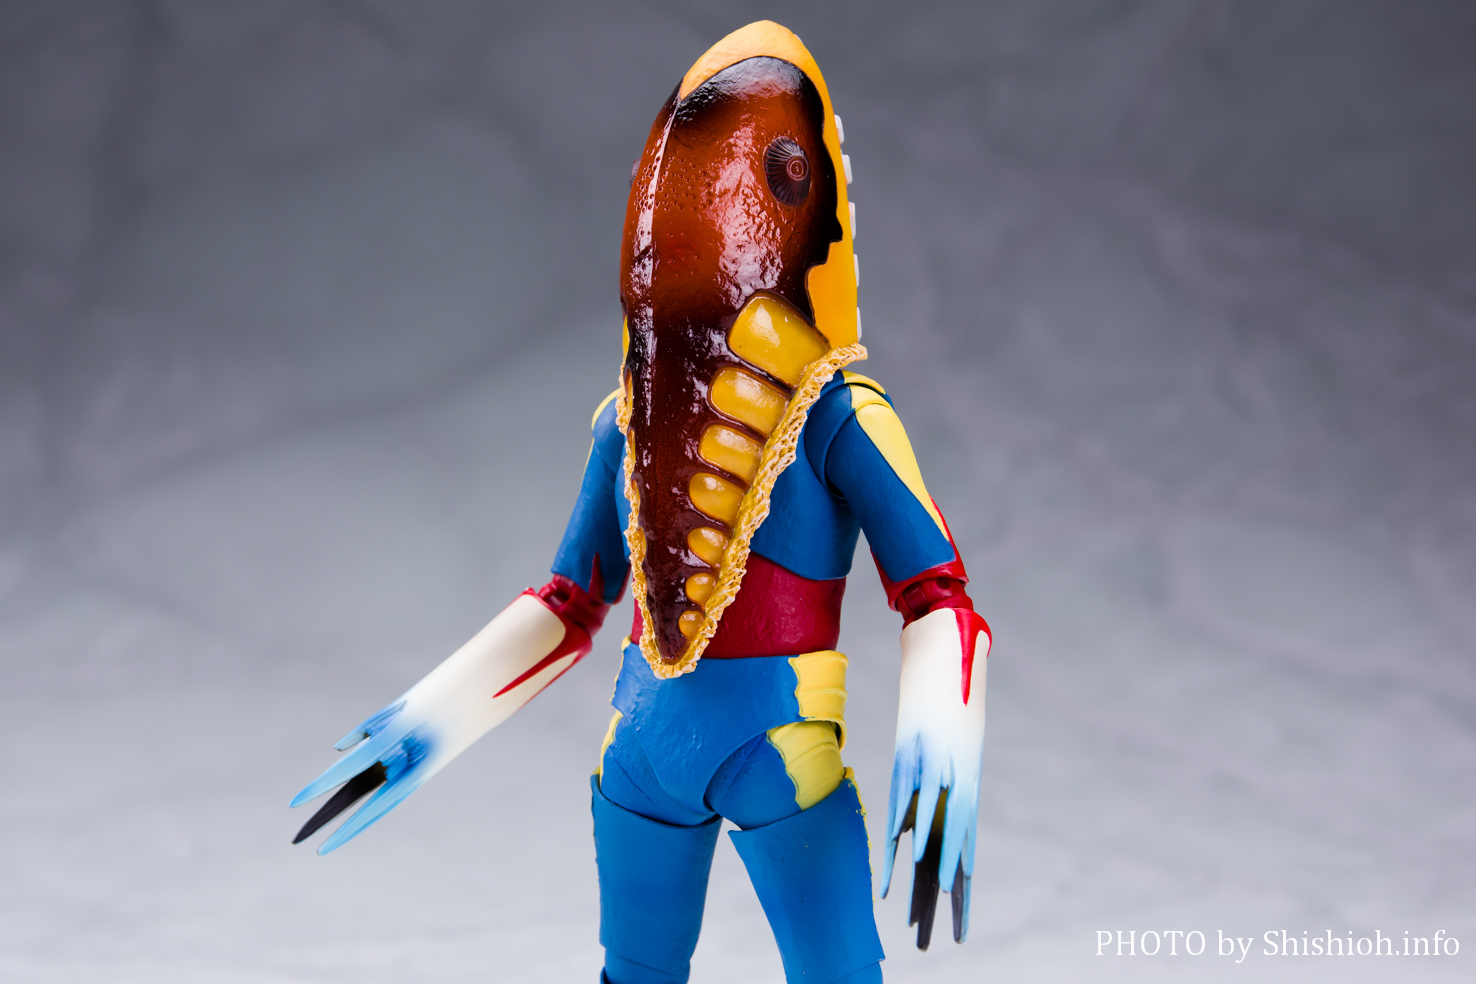 S.H.Figuarts メトロン星人